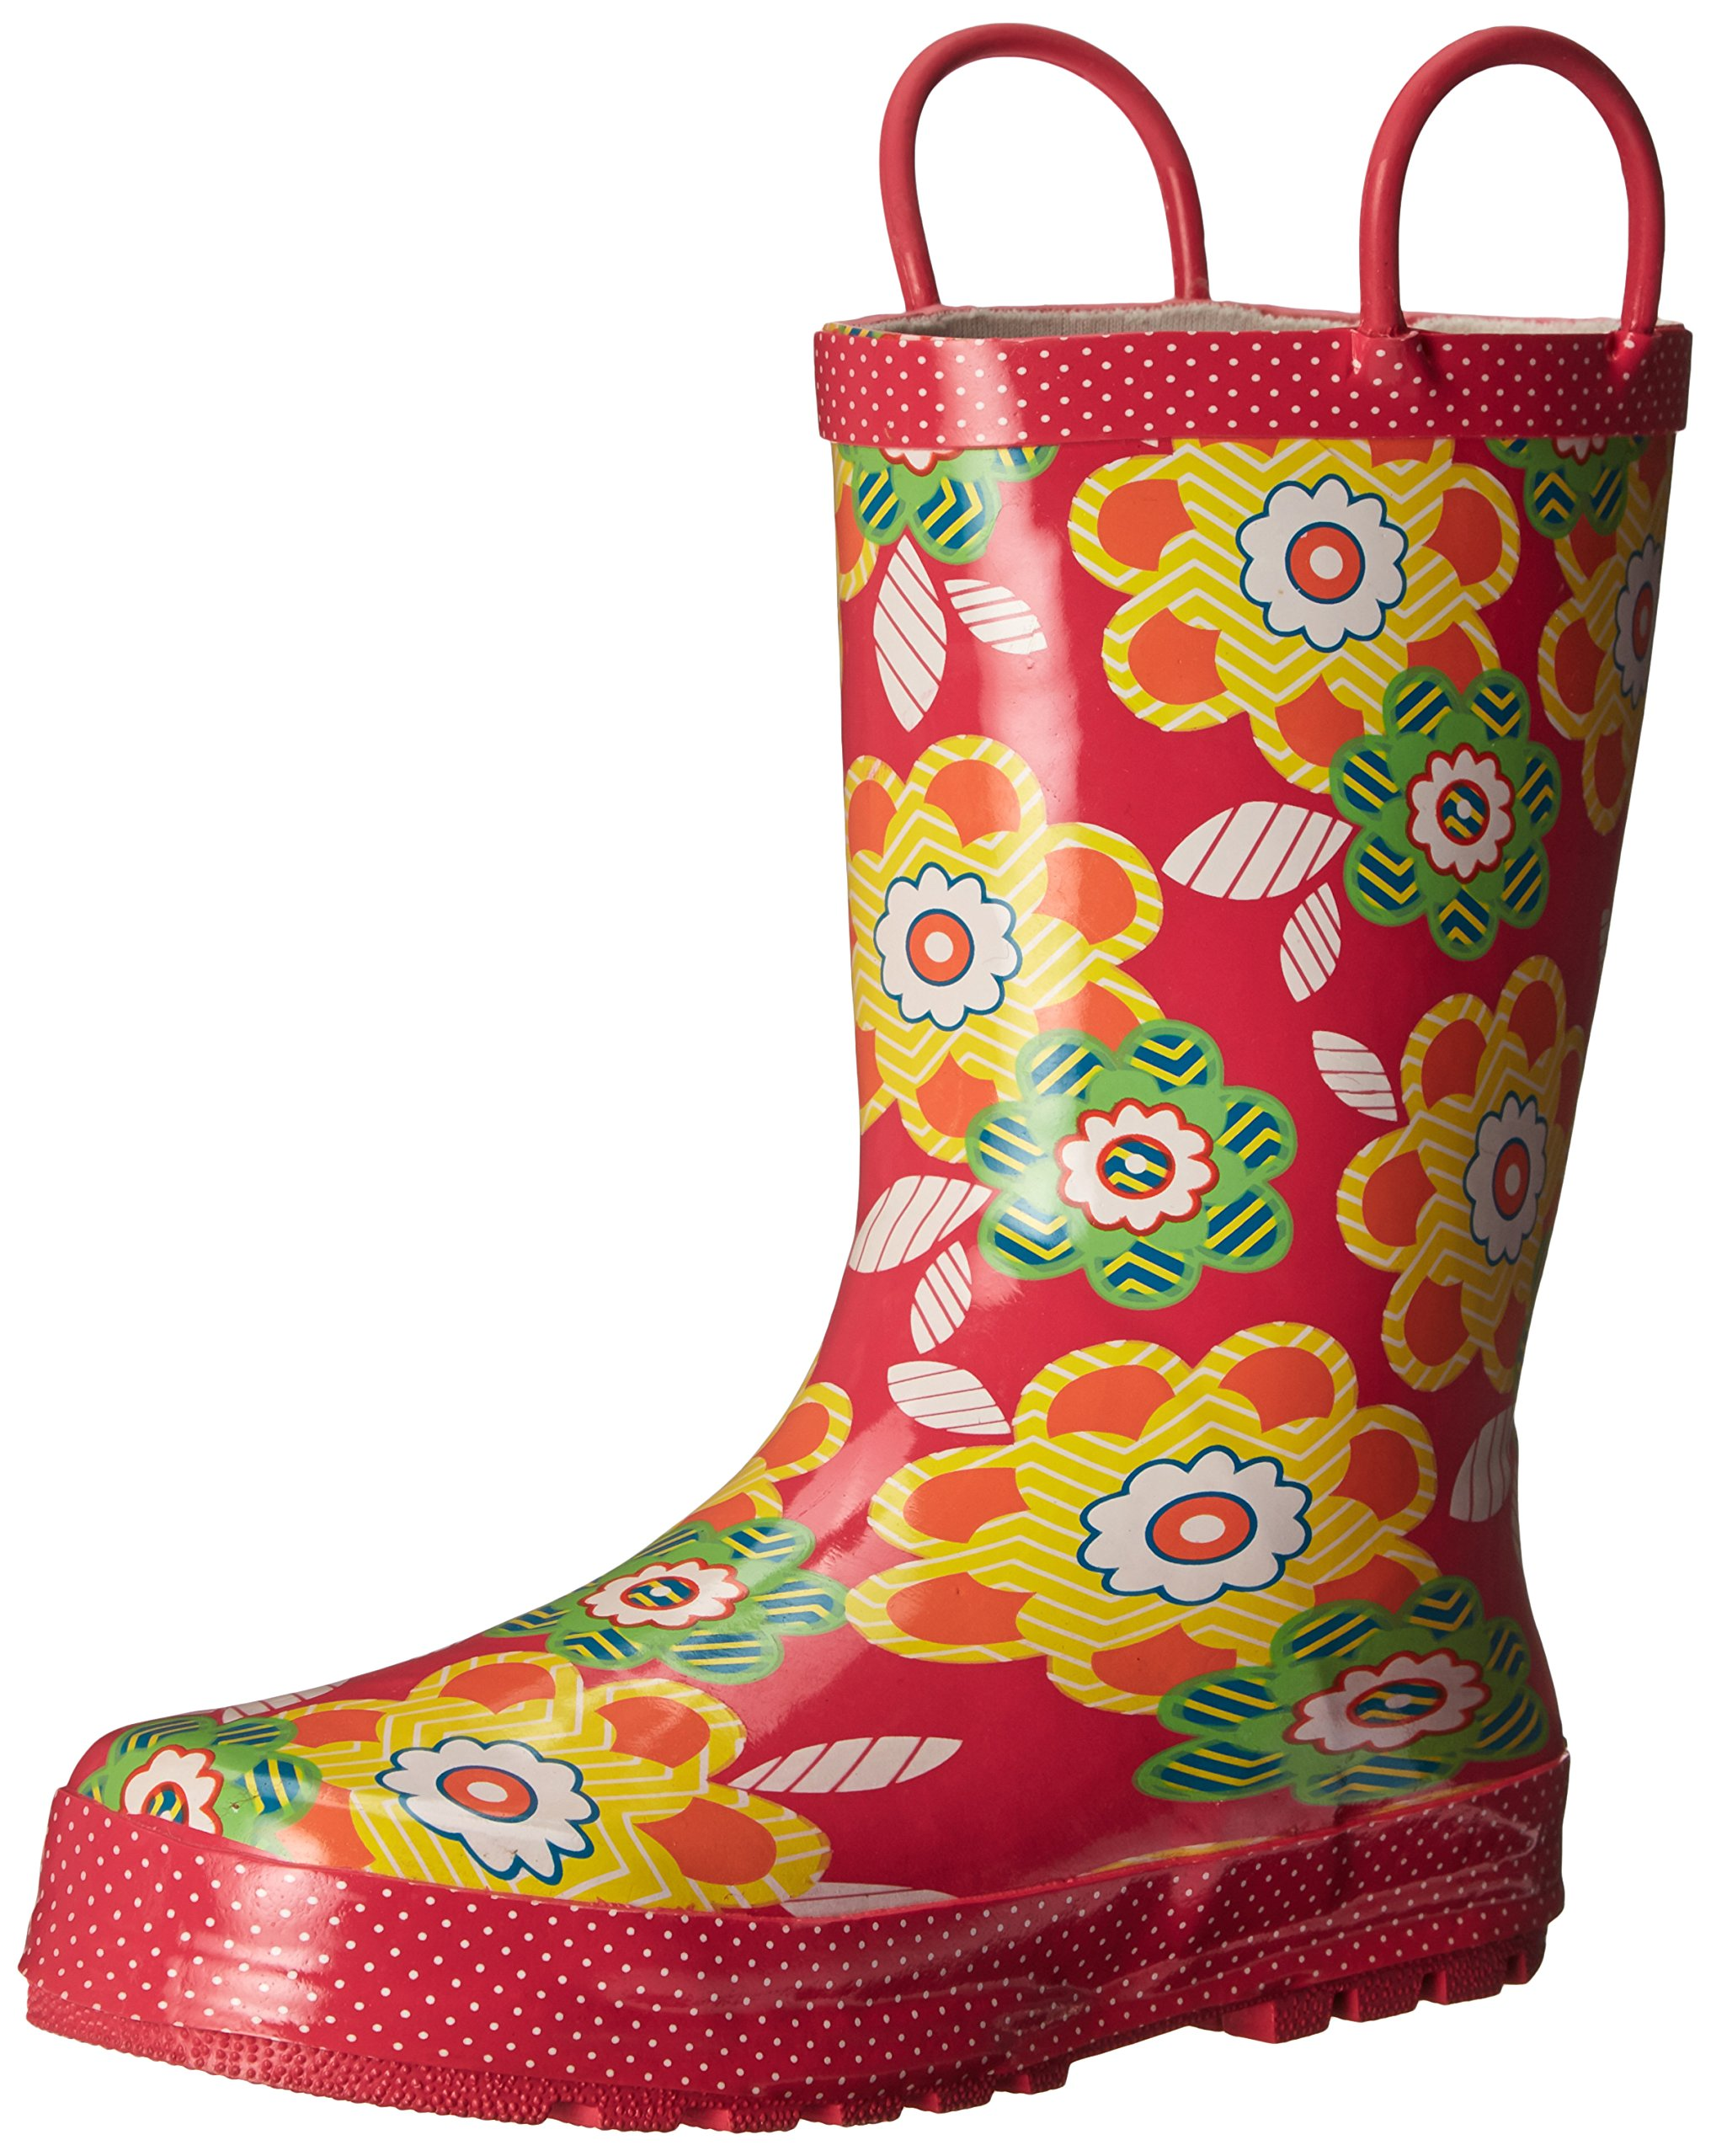 Western Chief Girls Printed Rain Boot, Zig Zag Floral, 10 M US Toddler